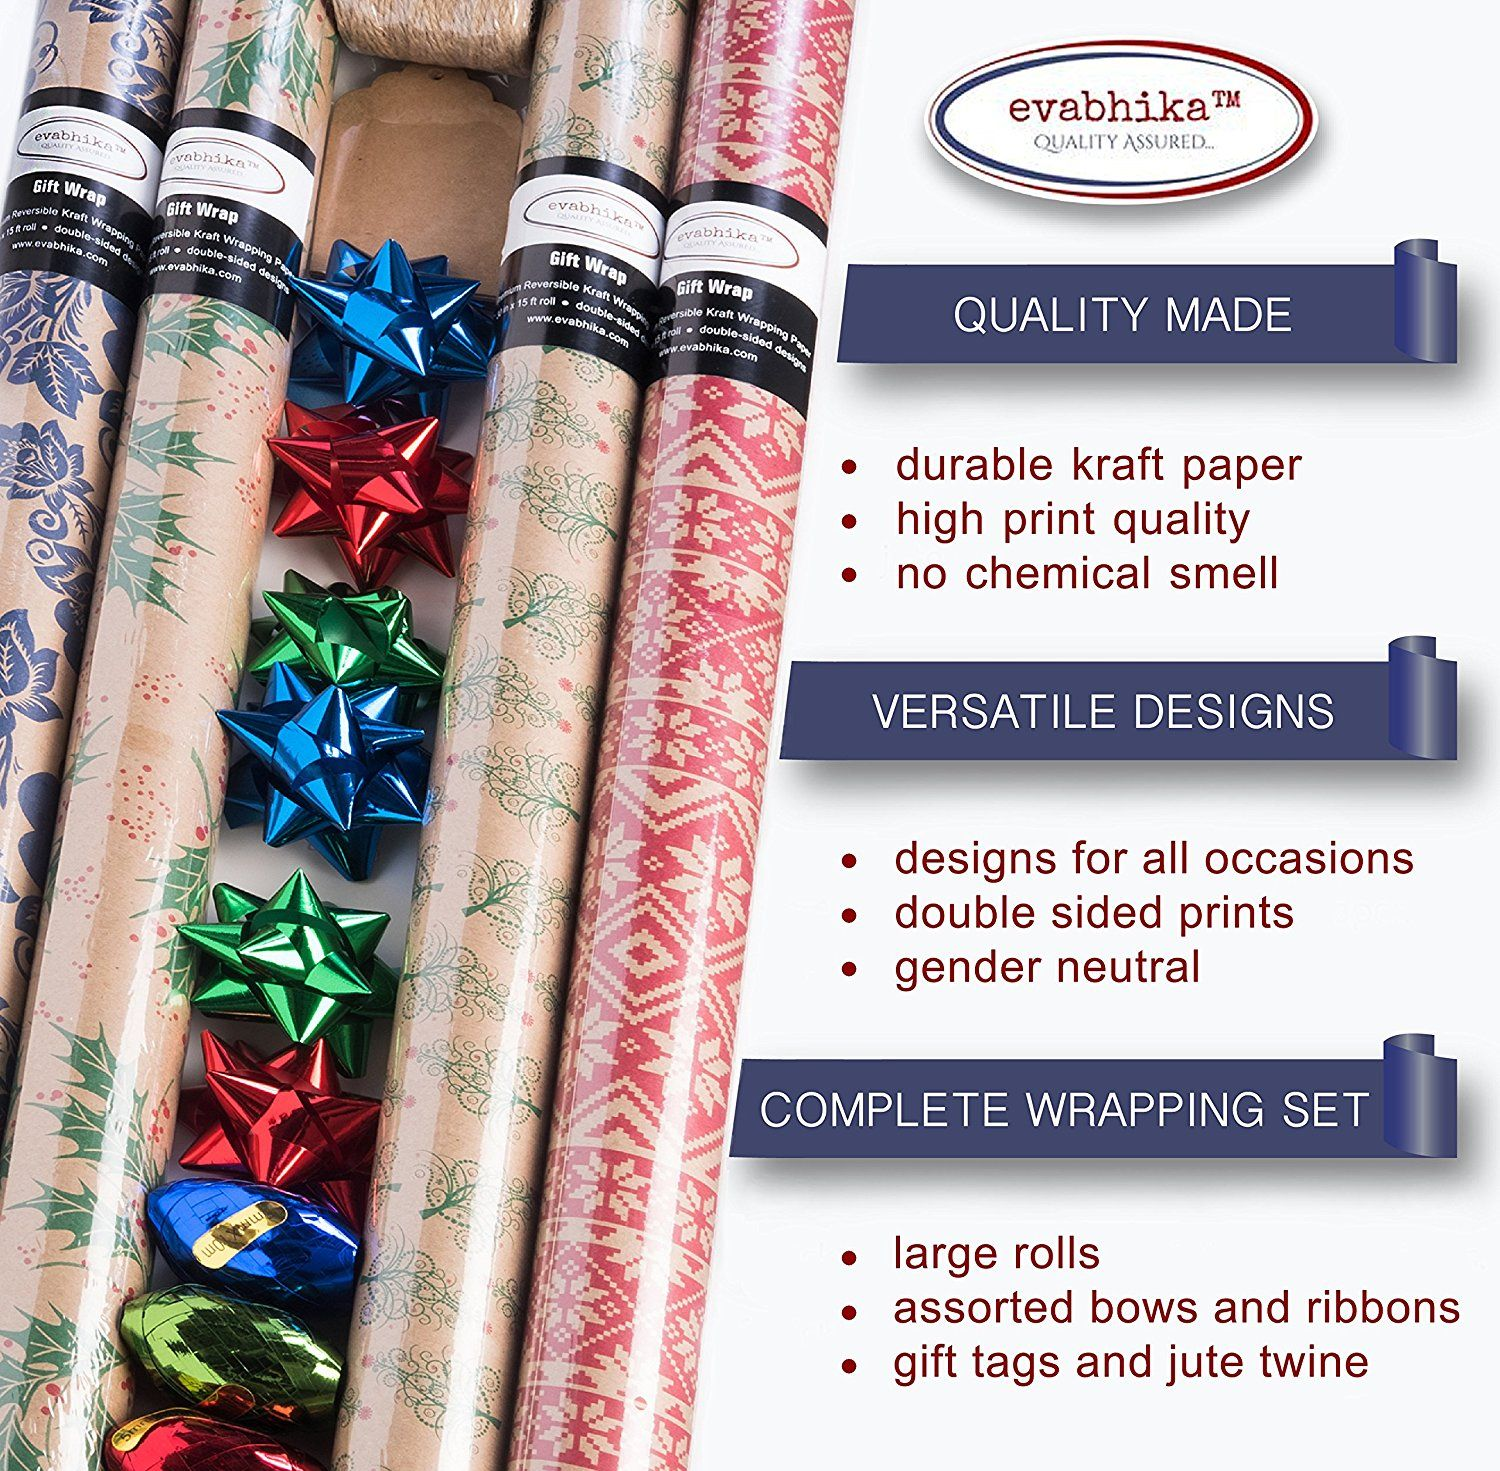 Amazon Com Kraft Wrapping Paper Set Gift Wrap With Reversible Designs For Birthday Baby S Wrapping Paper Rolls Kraft Paper Wrapping Gift Wrapping